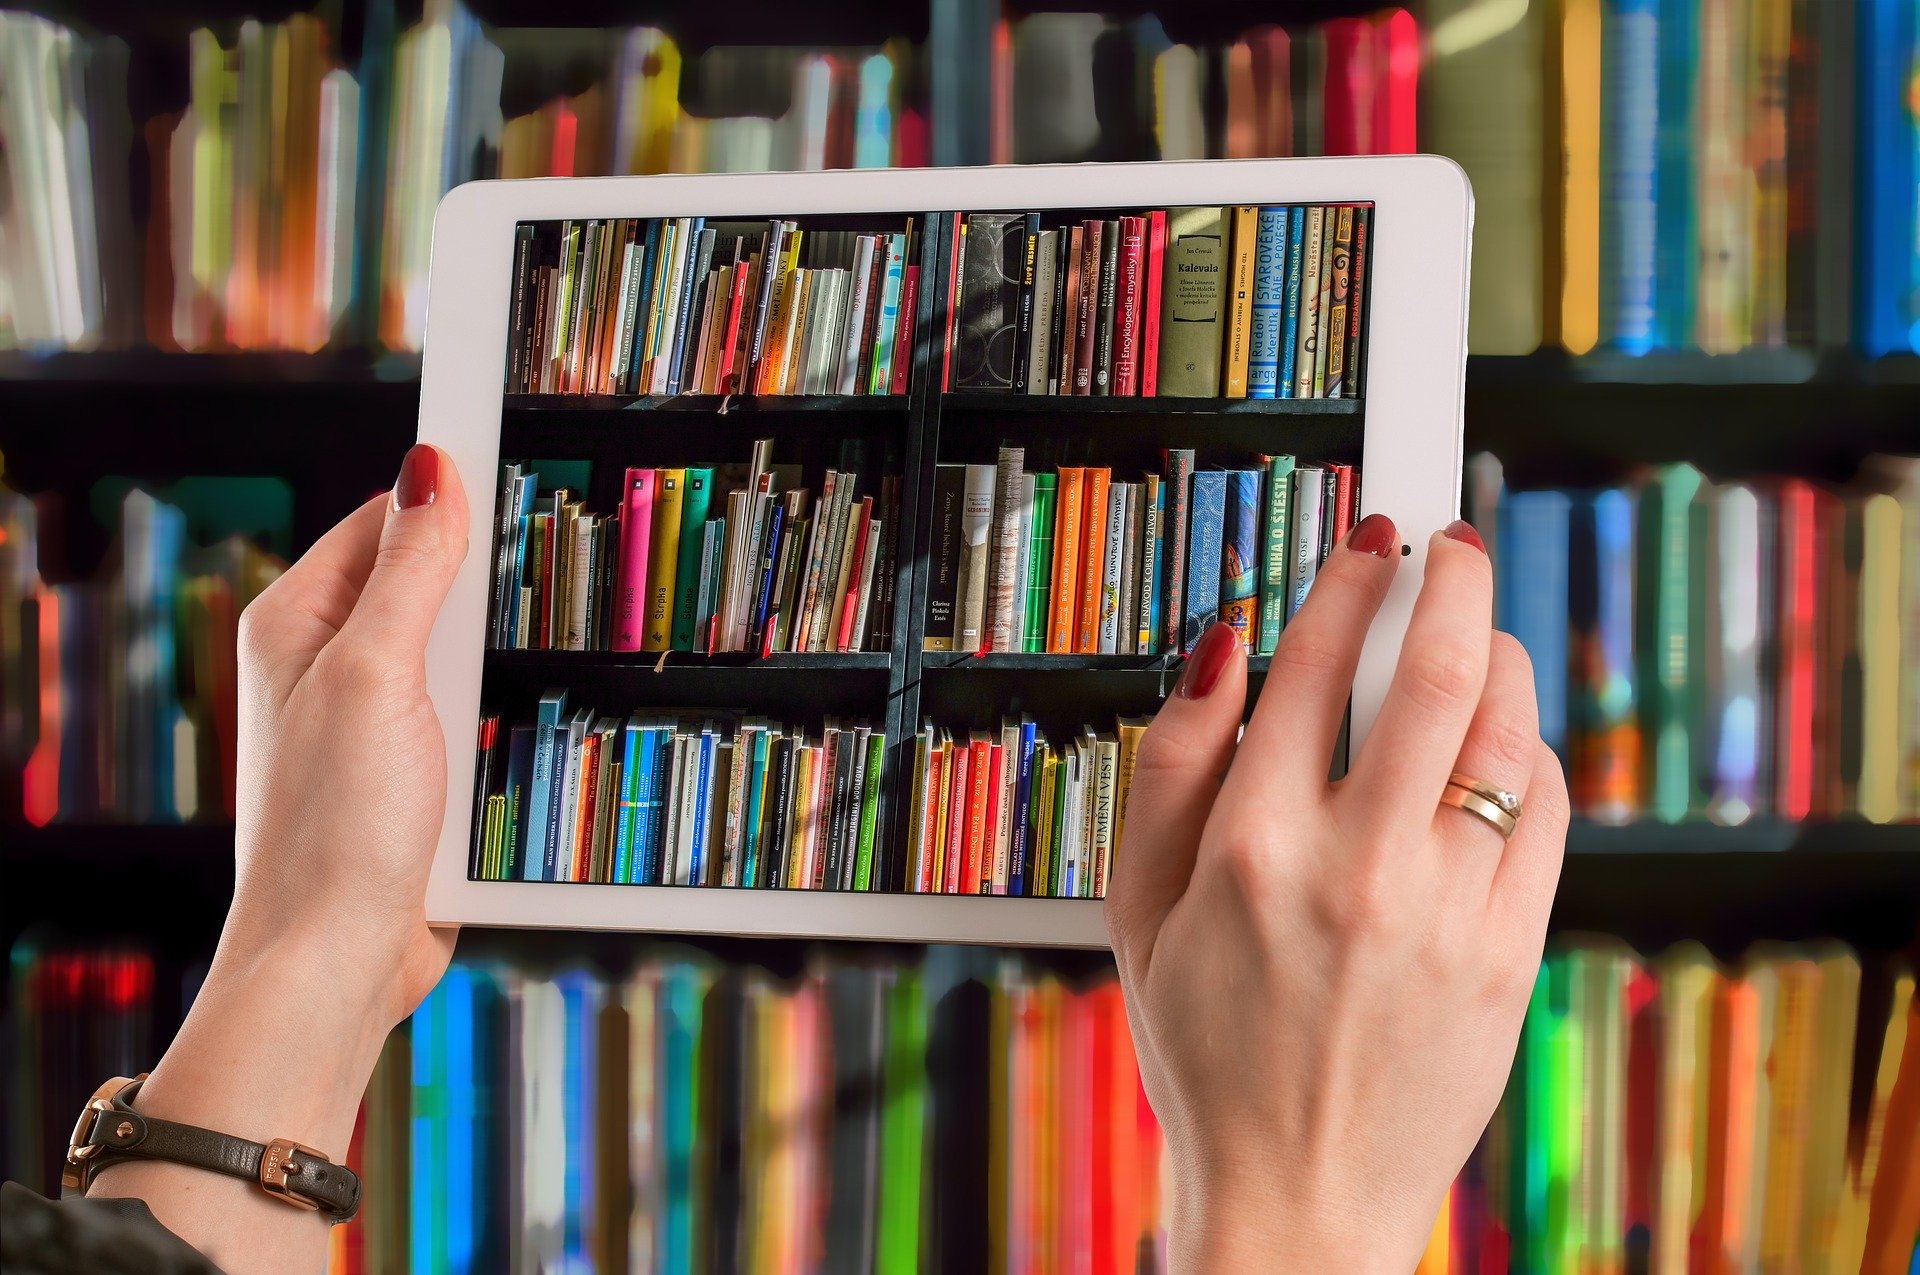 A close of up of a womans hands holding a tablet with an image of book shelves on it, in the background are books on shelves.